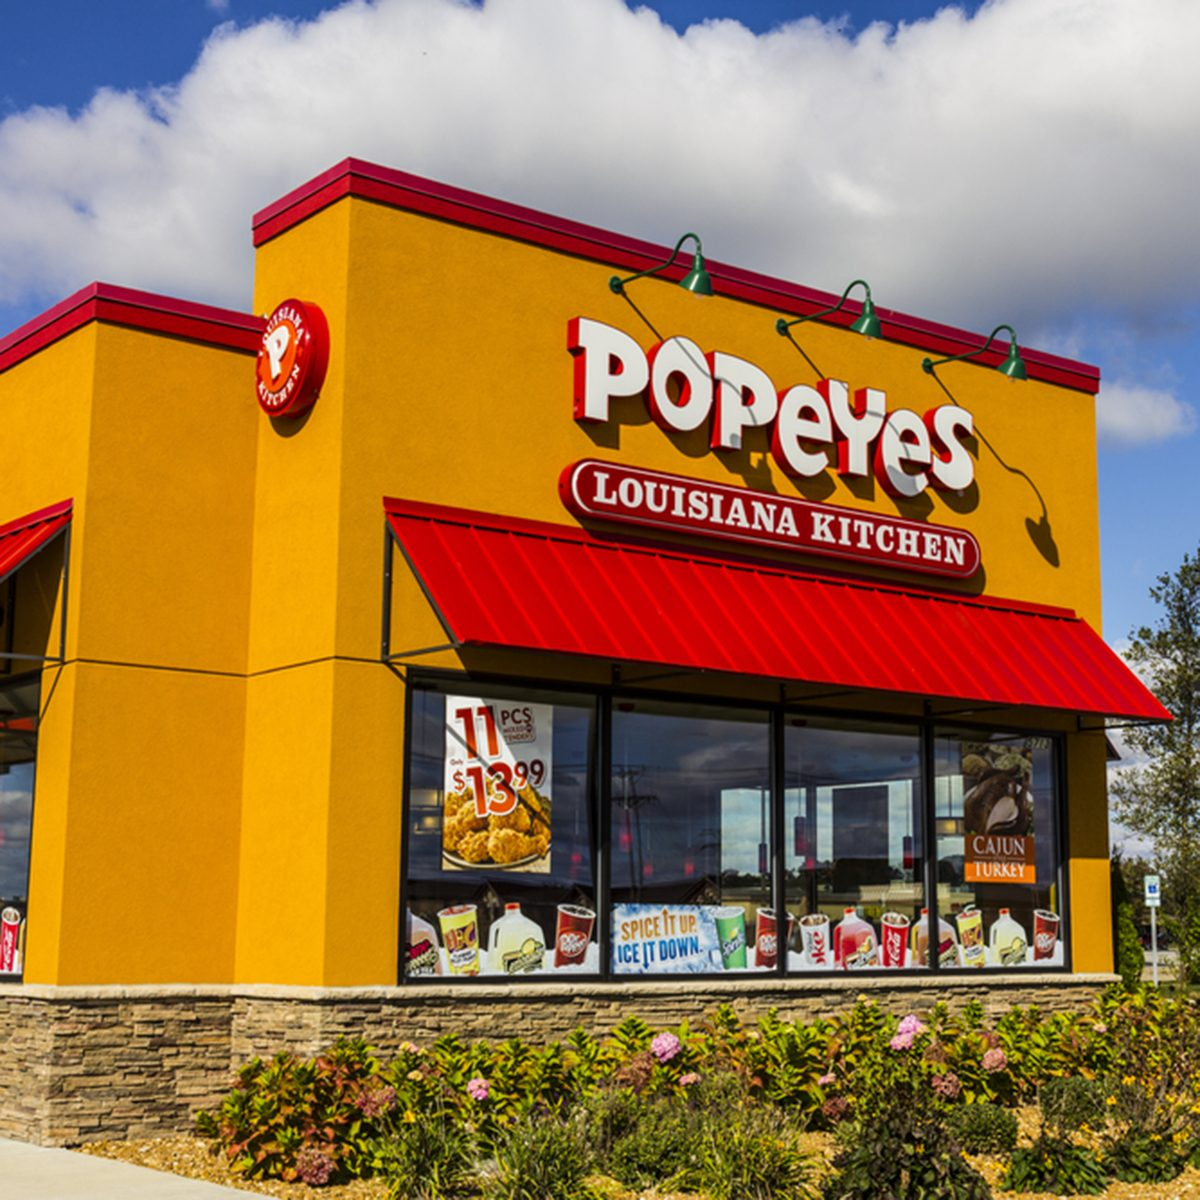 Popeyes Louisiana Kitchen Fast Food Restaurant.